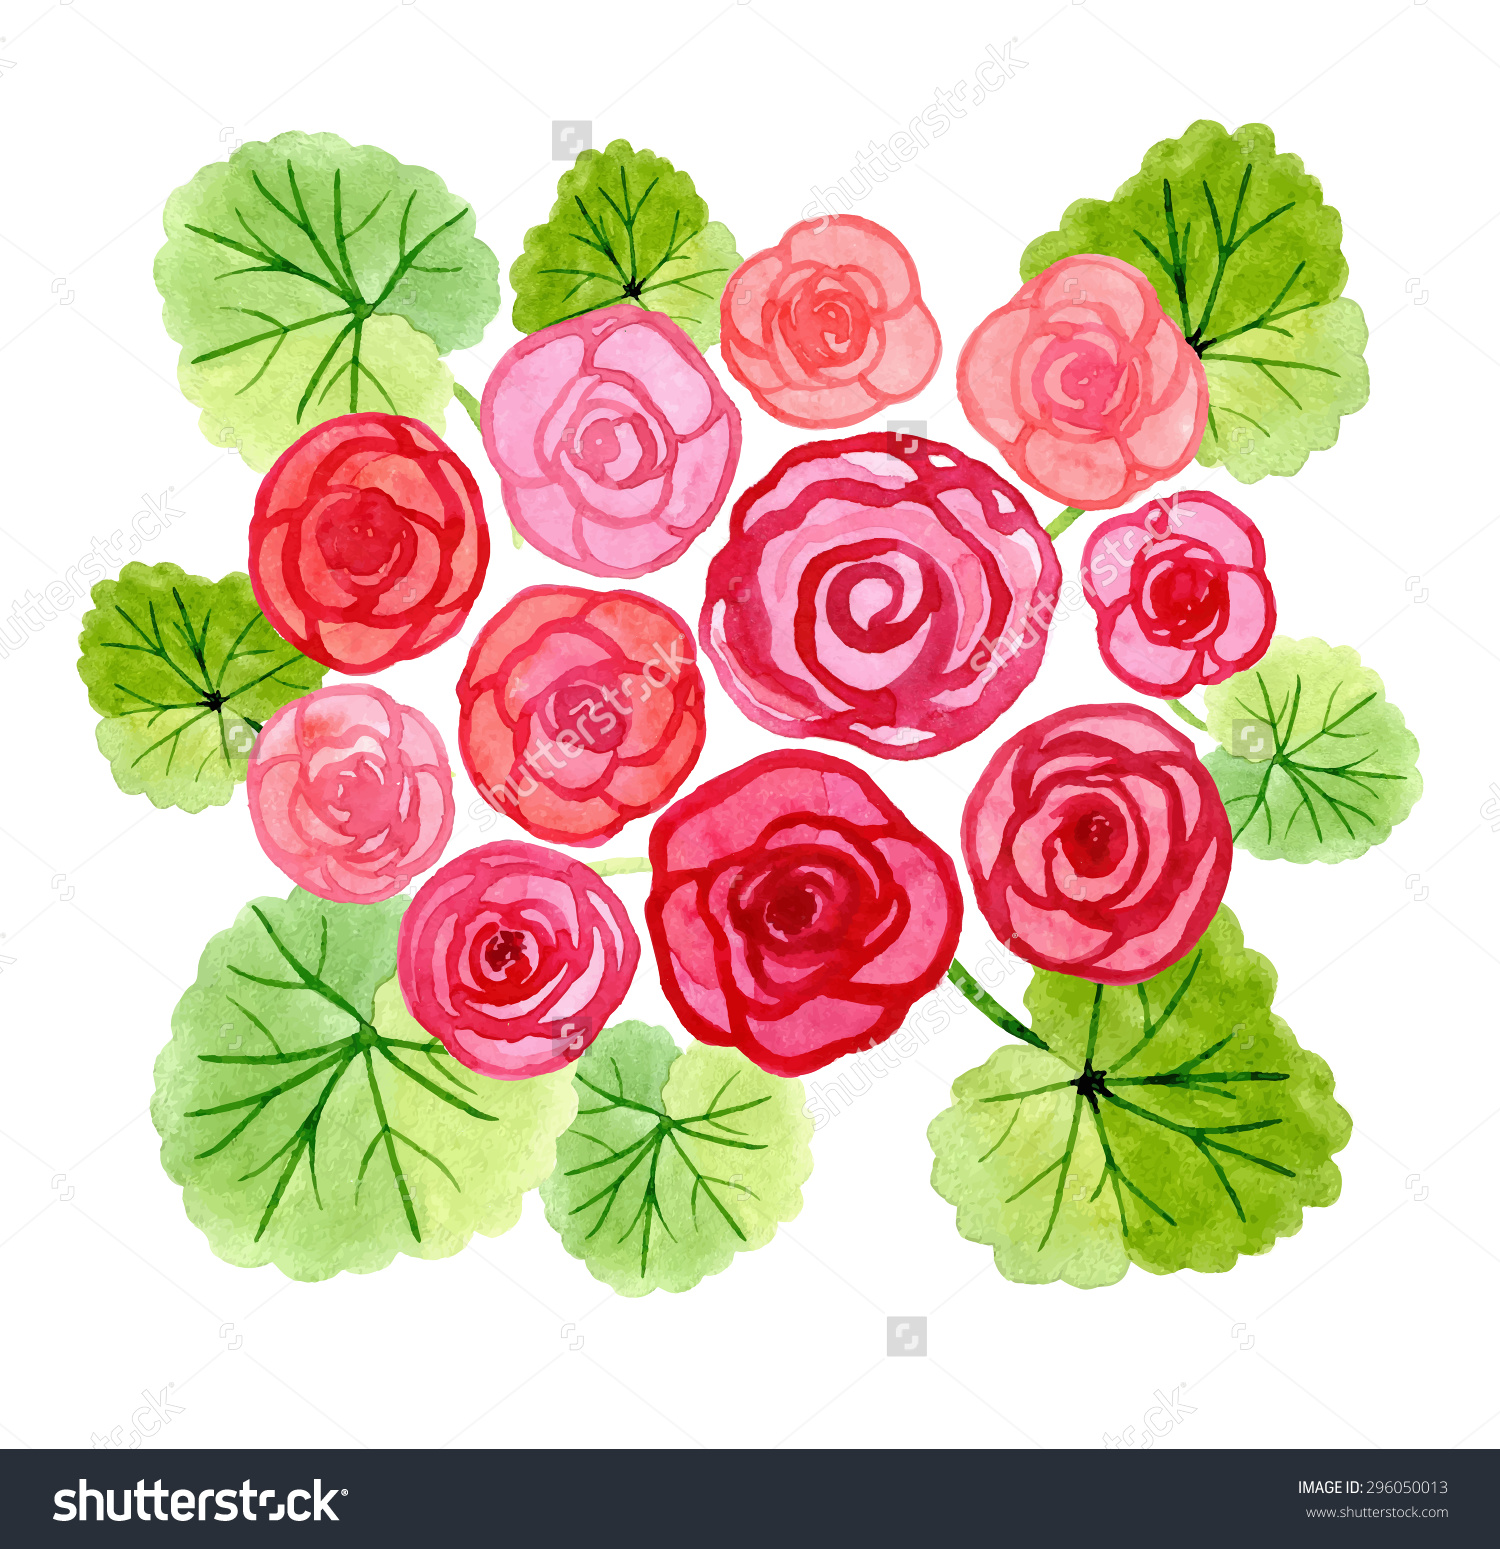 Hand Drawn Watercolor Begonia Flowers Bouquet Stock Vector.